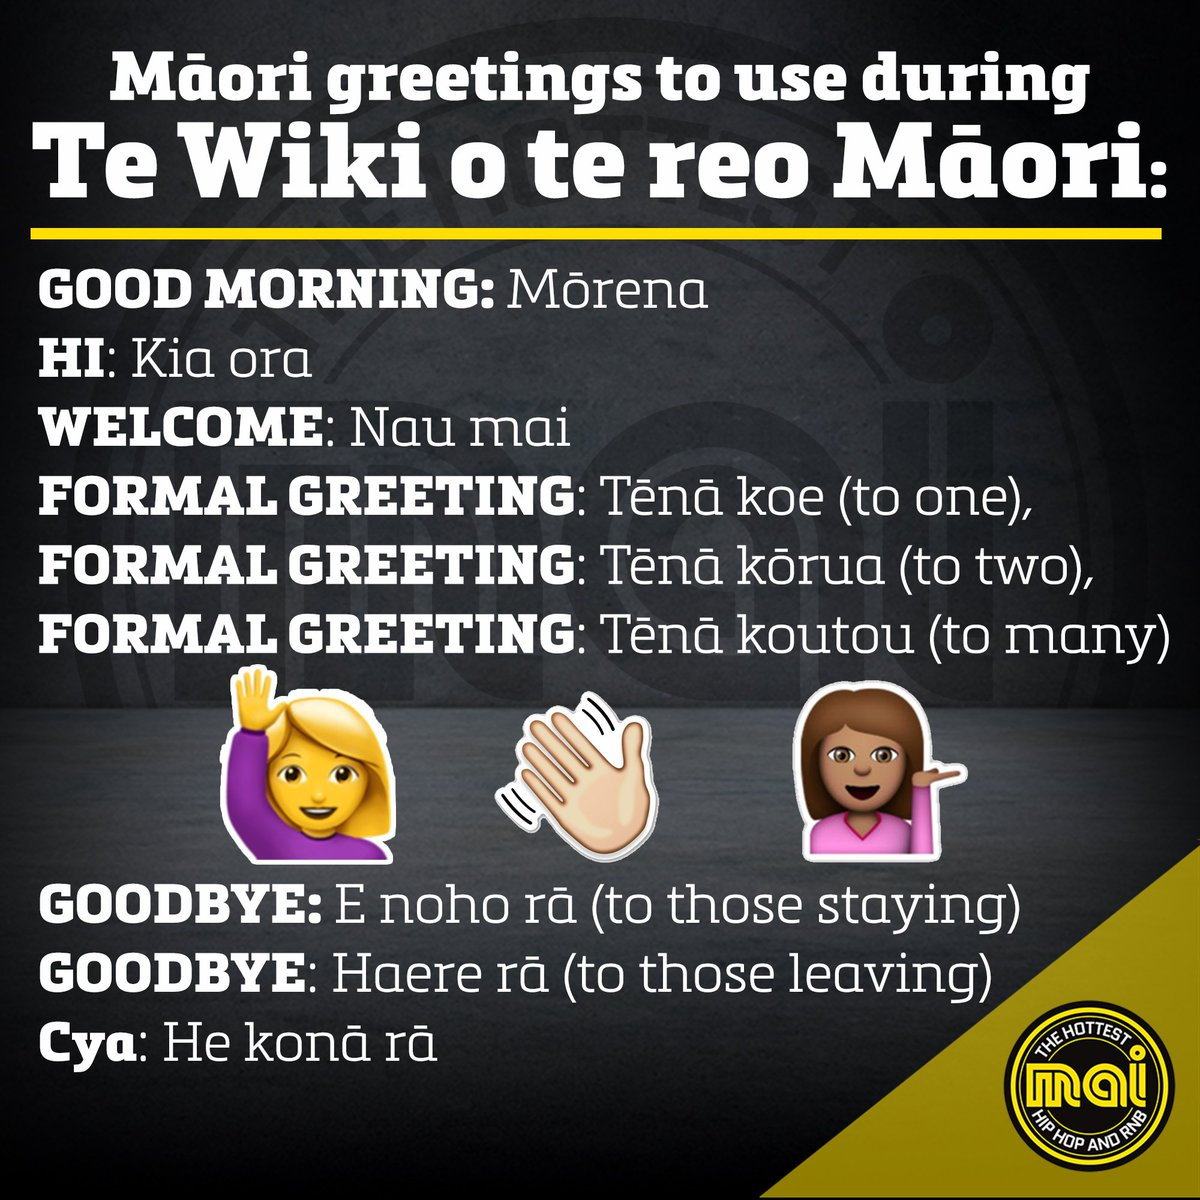 Mai fm on twitter its maori language week heres some handy mai fm on twitter its maori language week heres some handy words and phrases to drop into your conversations tewikiotereomaori m4hsunfo